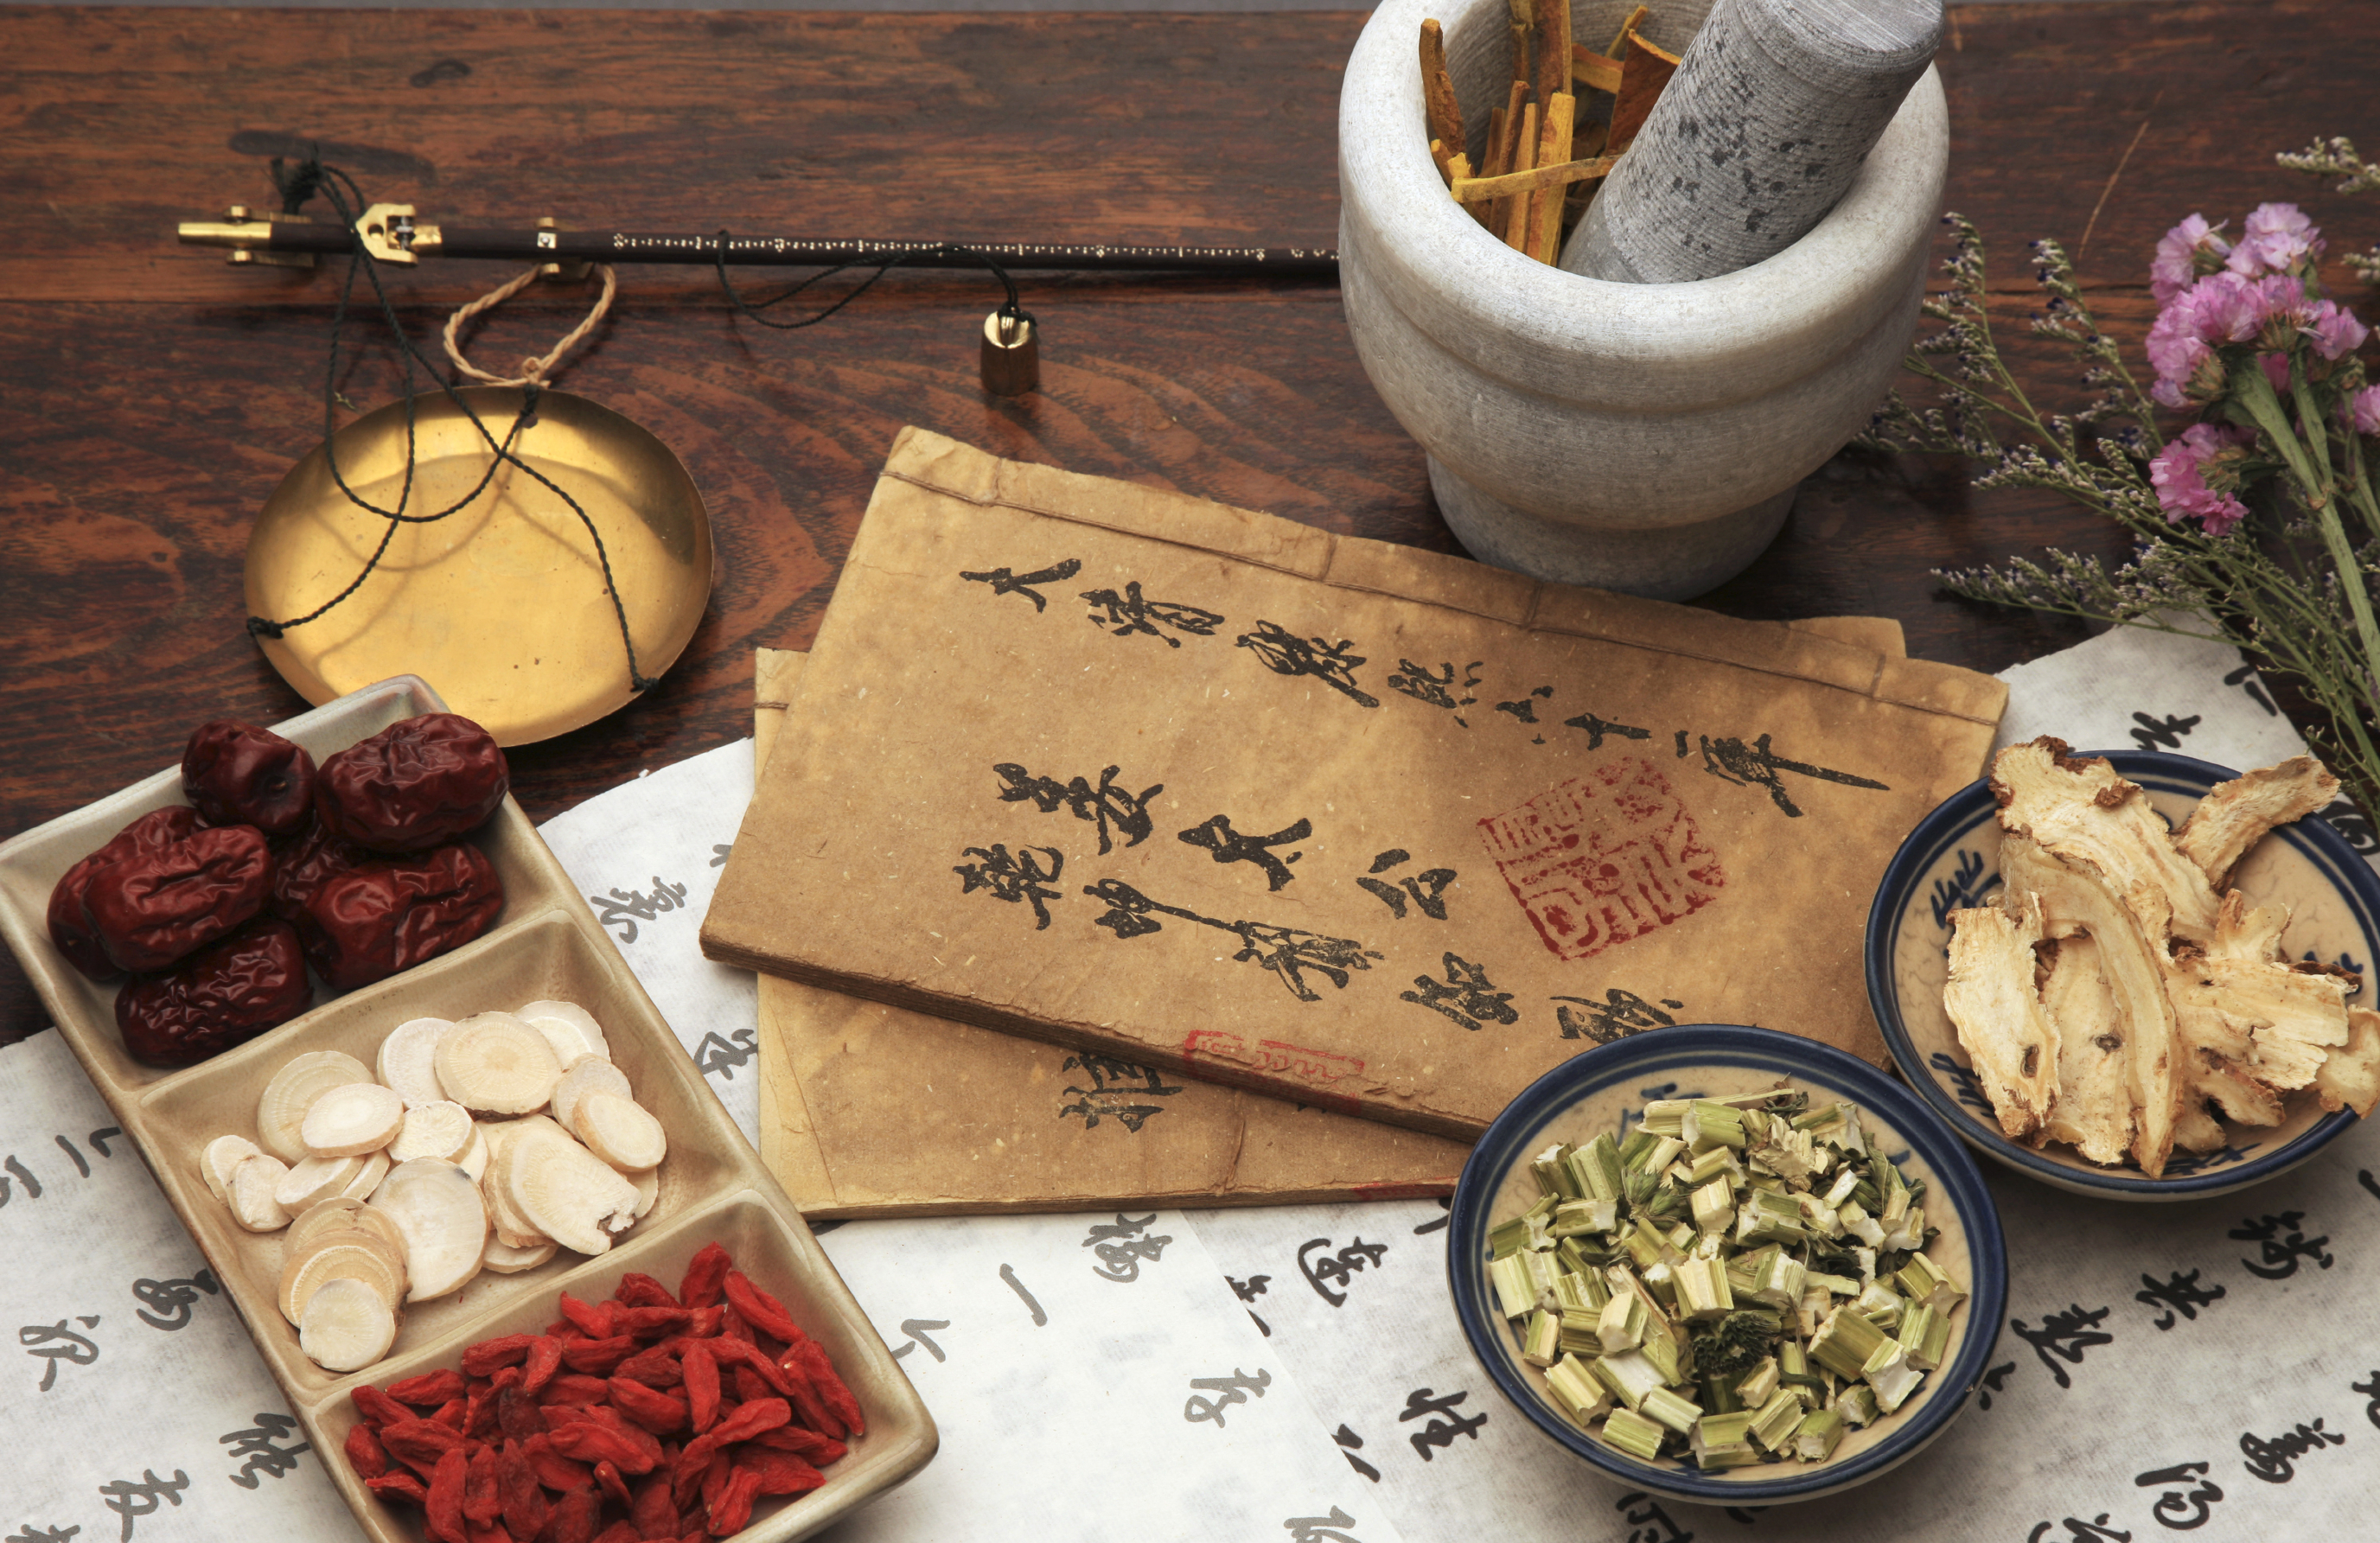 The Broad Street Practice » Chinese Herbal Medicine